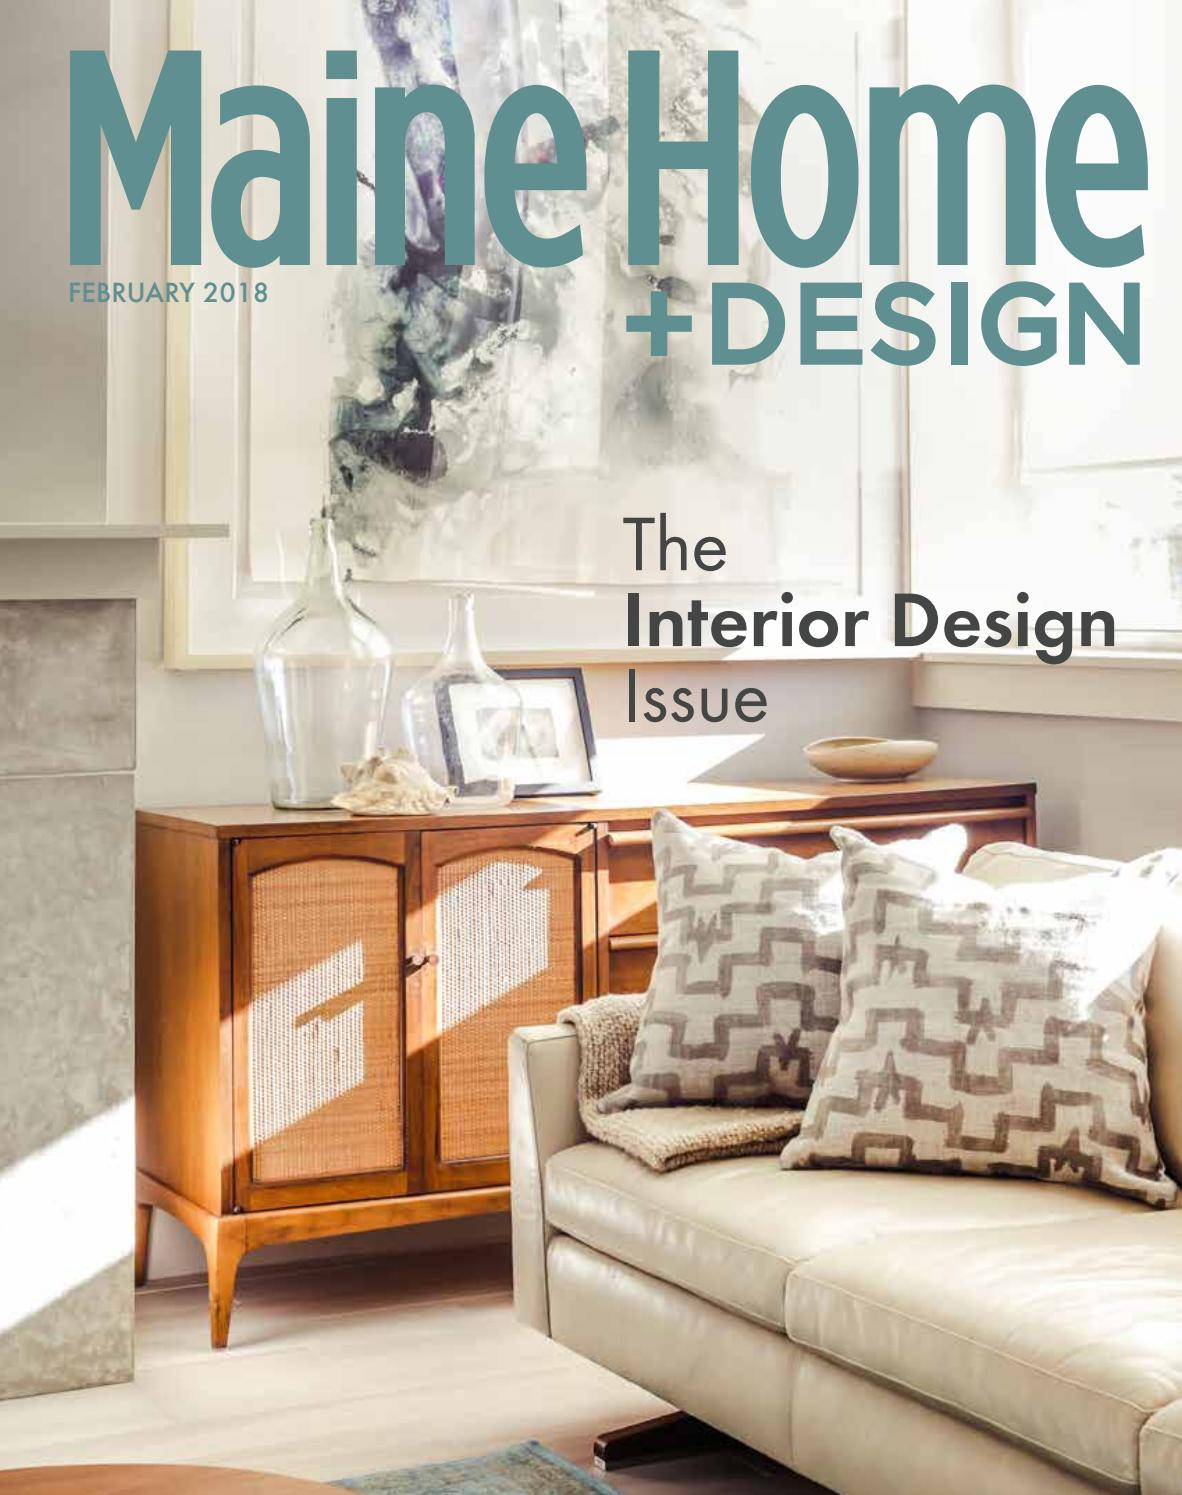 Peters Esszimmer Facebook Maine Home Design February 2018